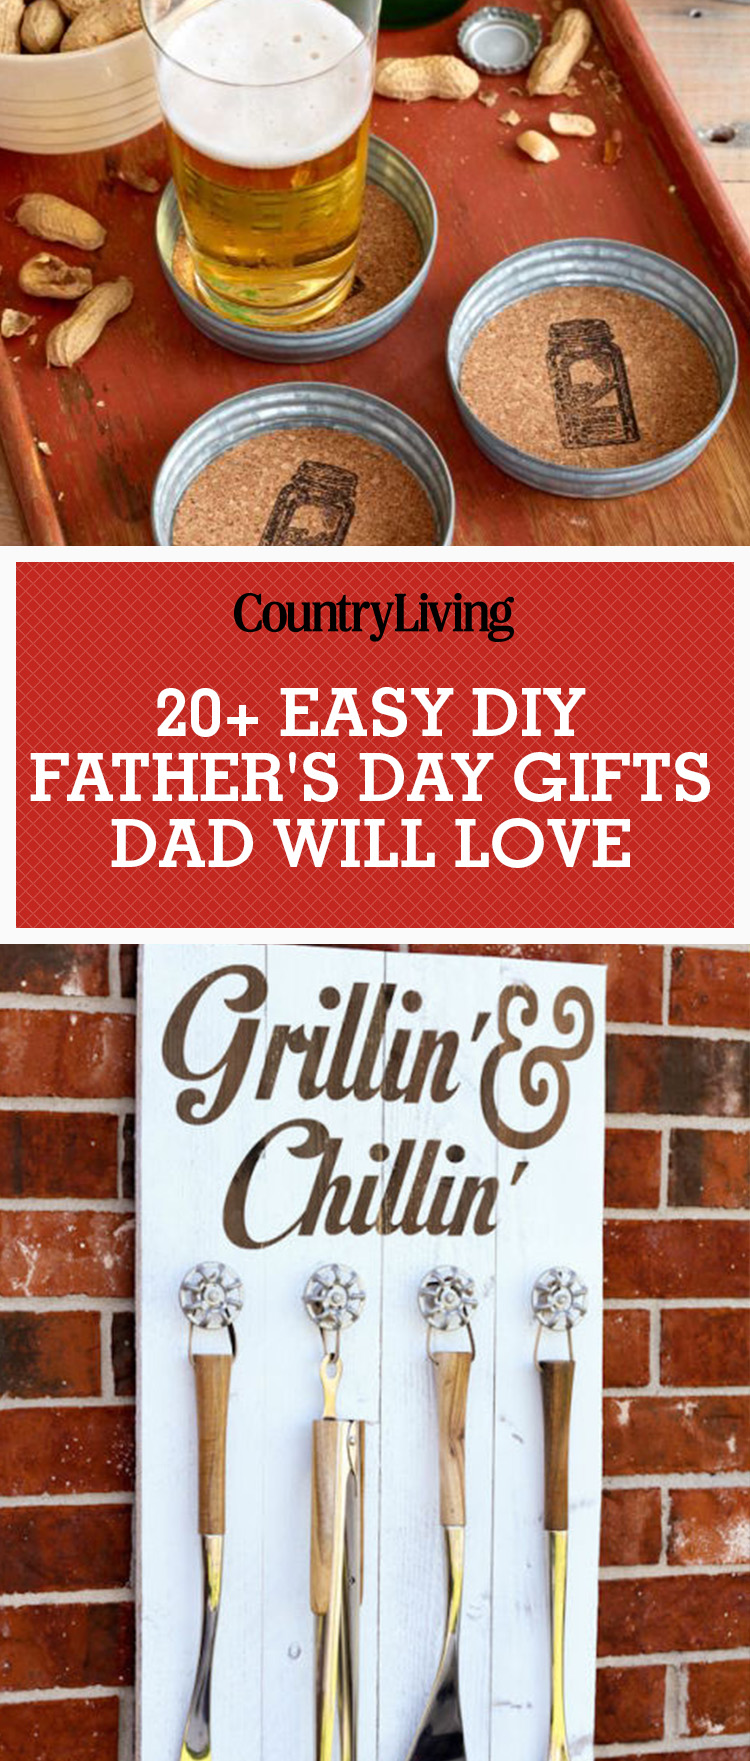 Crafts For Dad: 25 DIY Fathers Day Gifts & Crafts